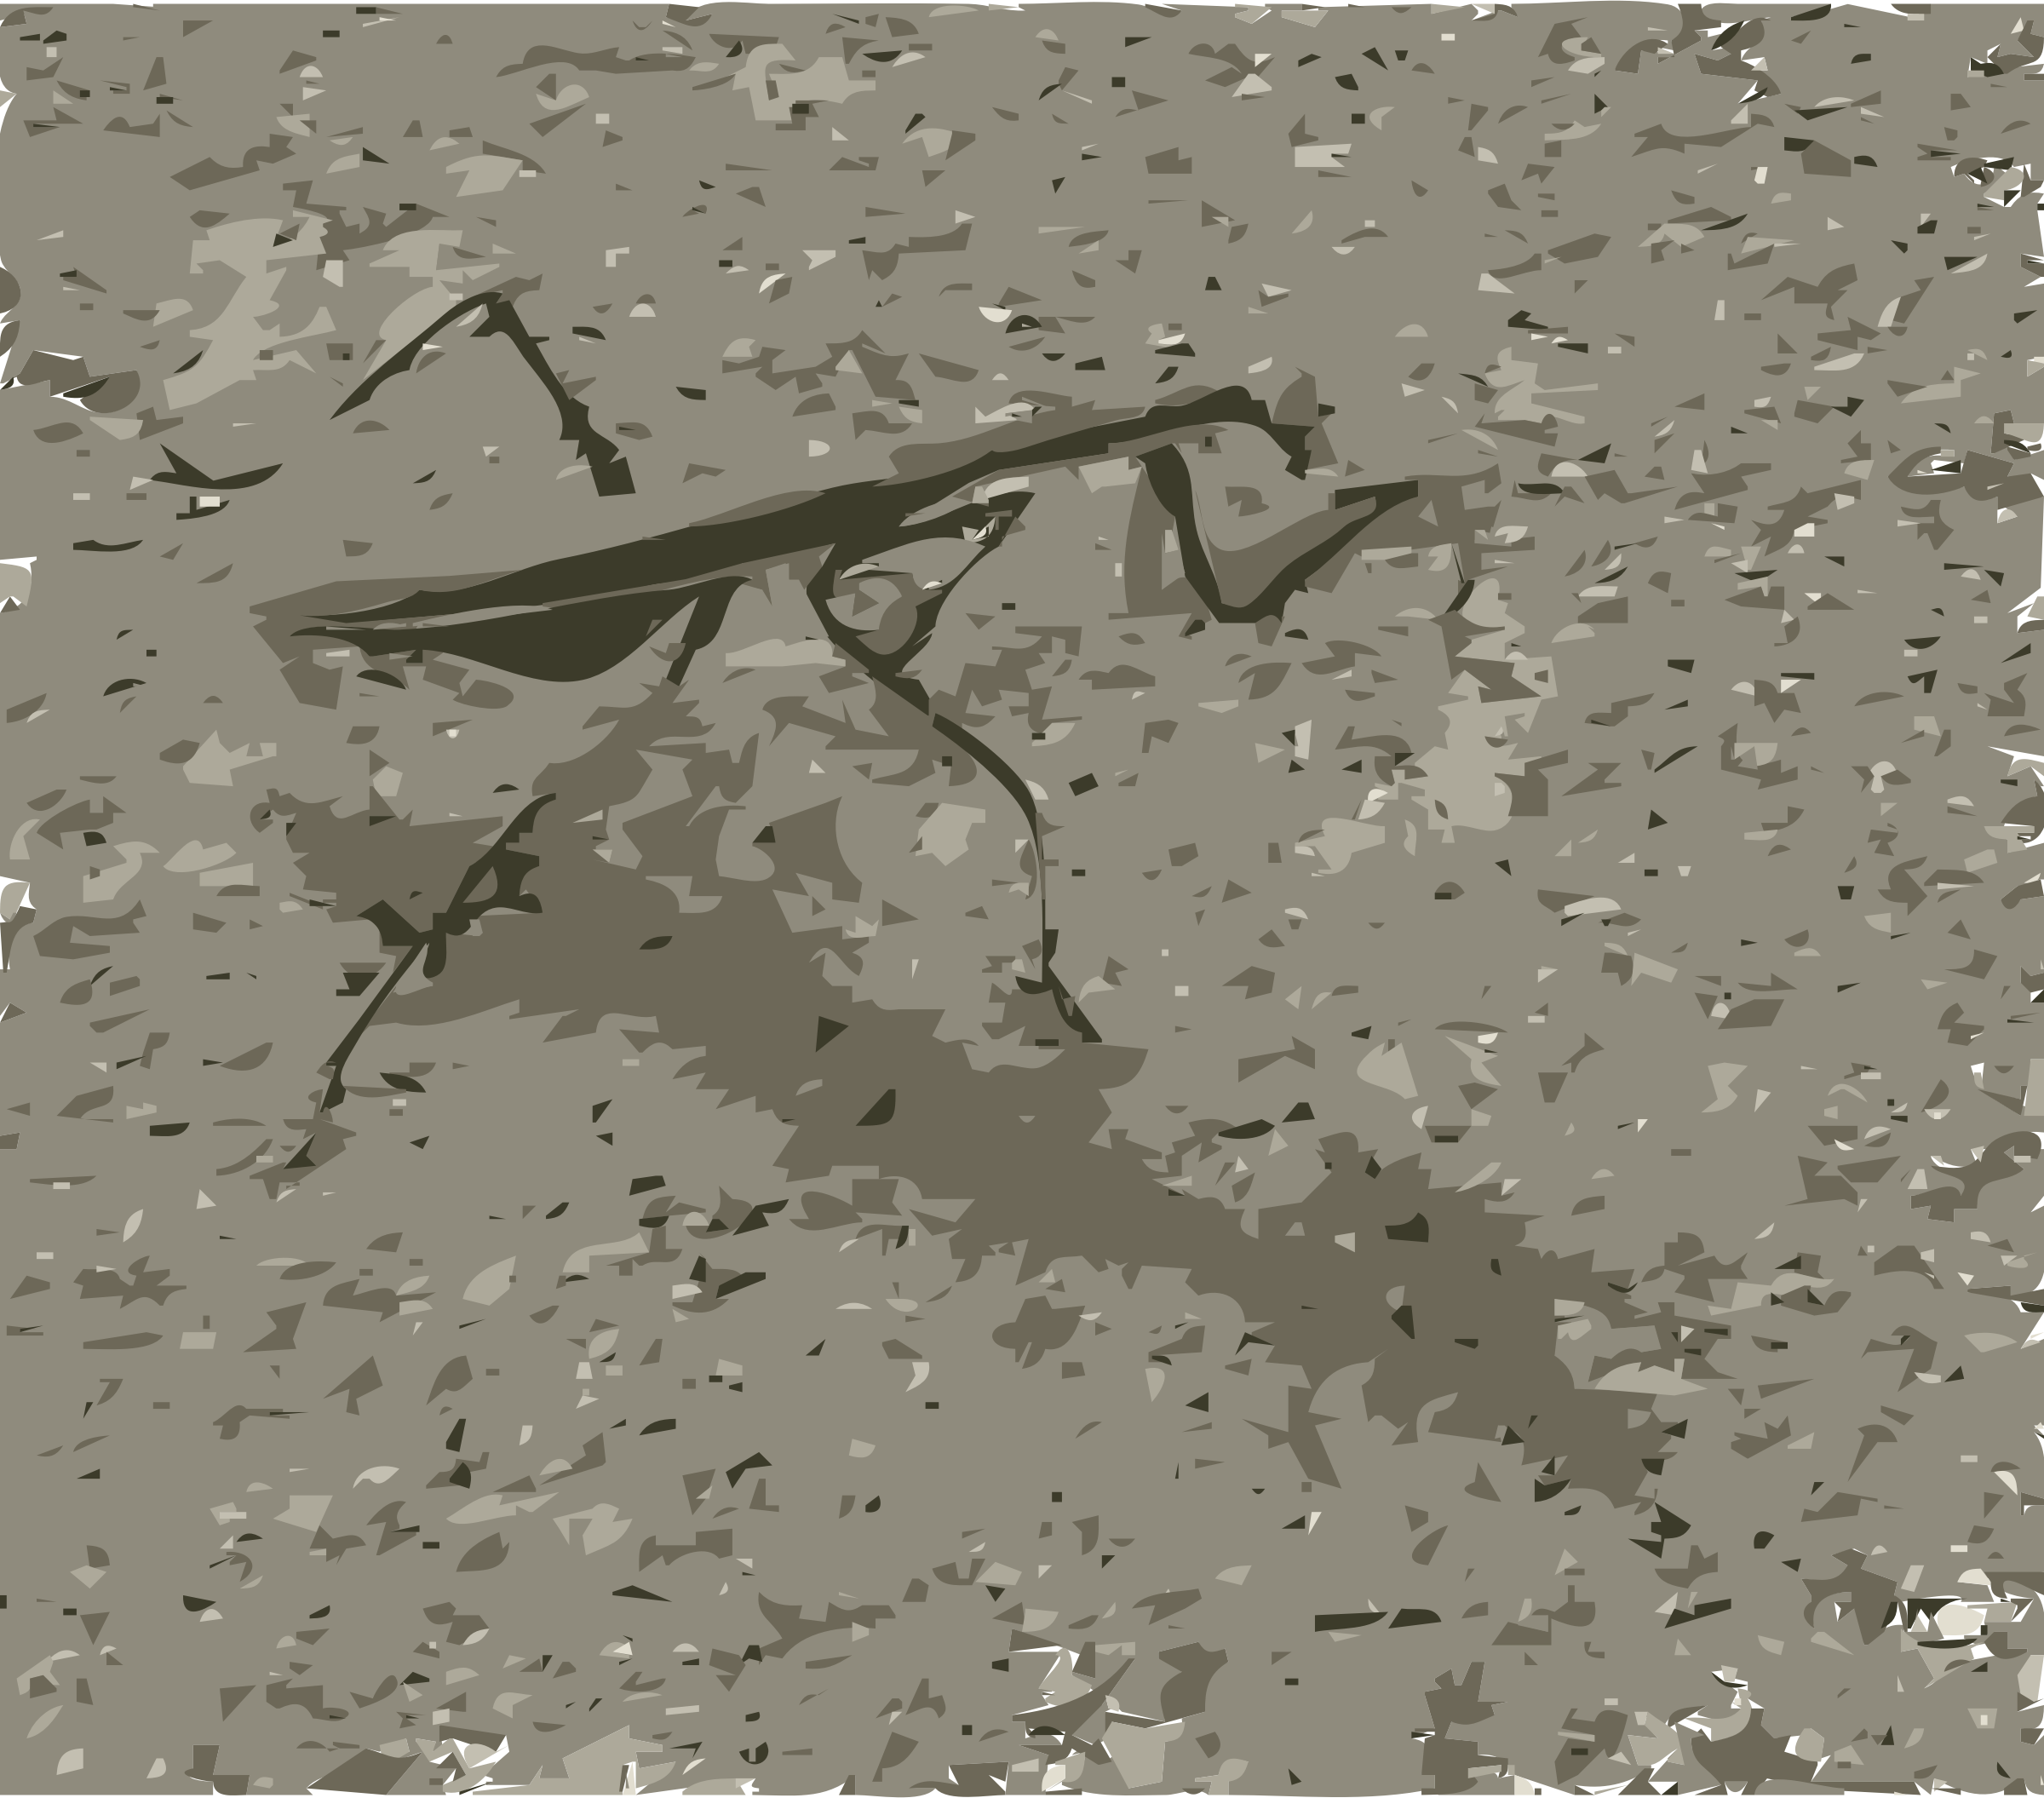 Praying Mantis by EdR